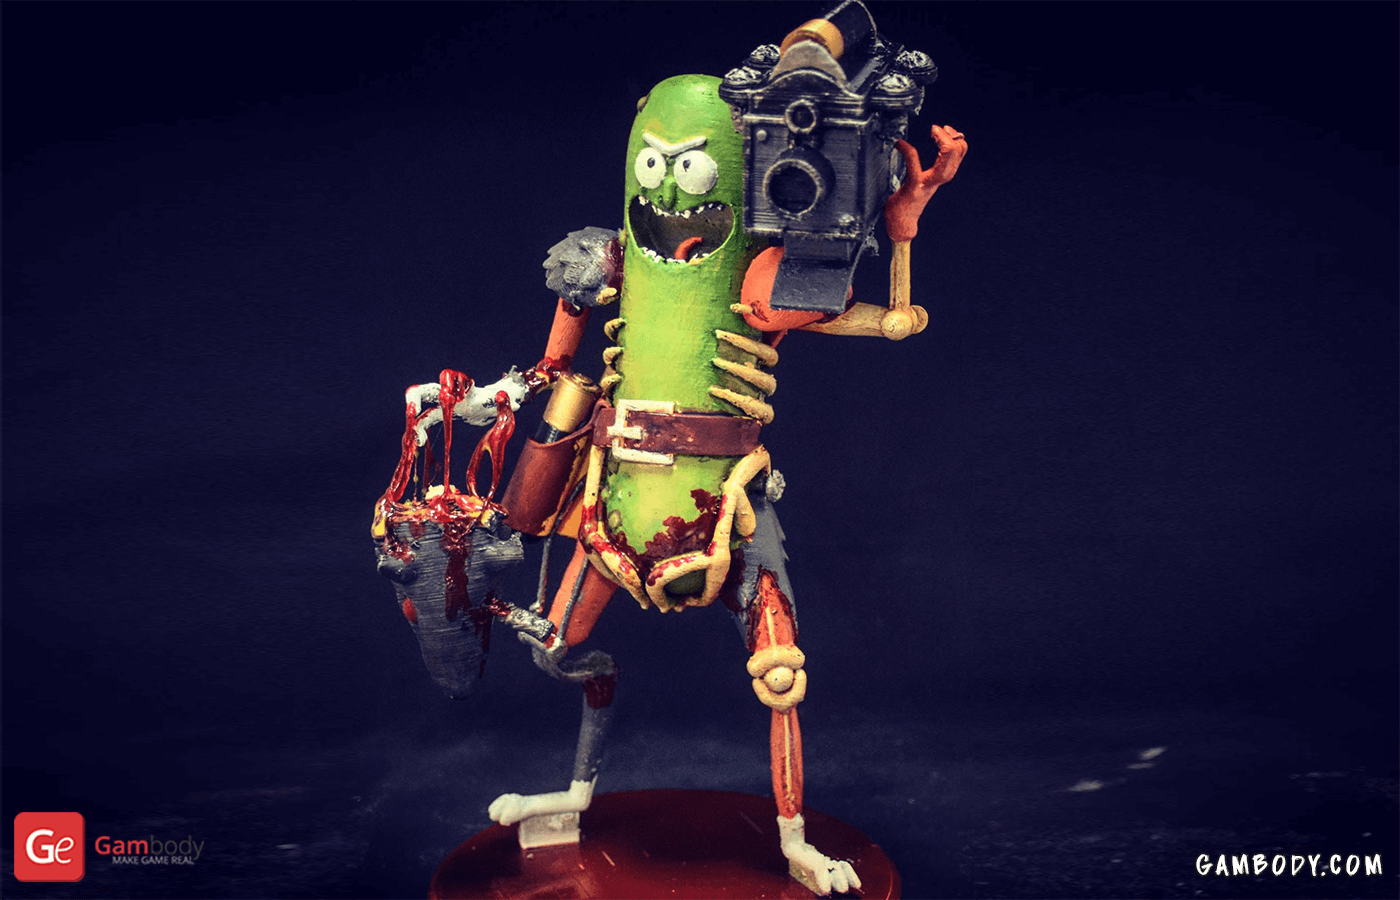 Pickle Rick 3D Printing Figurine